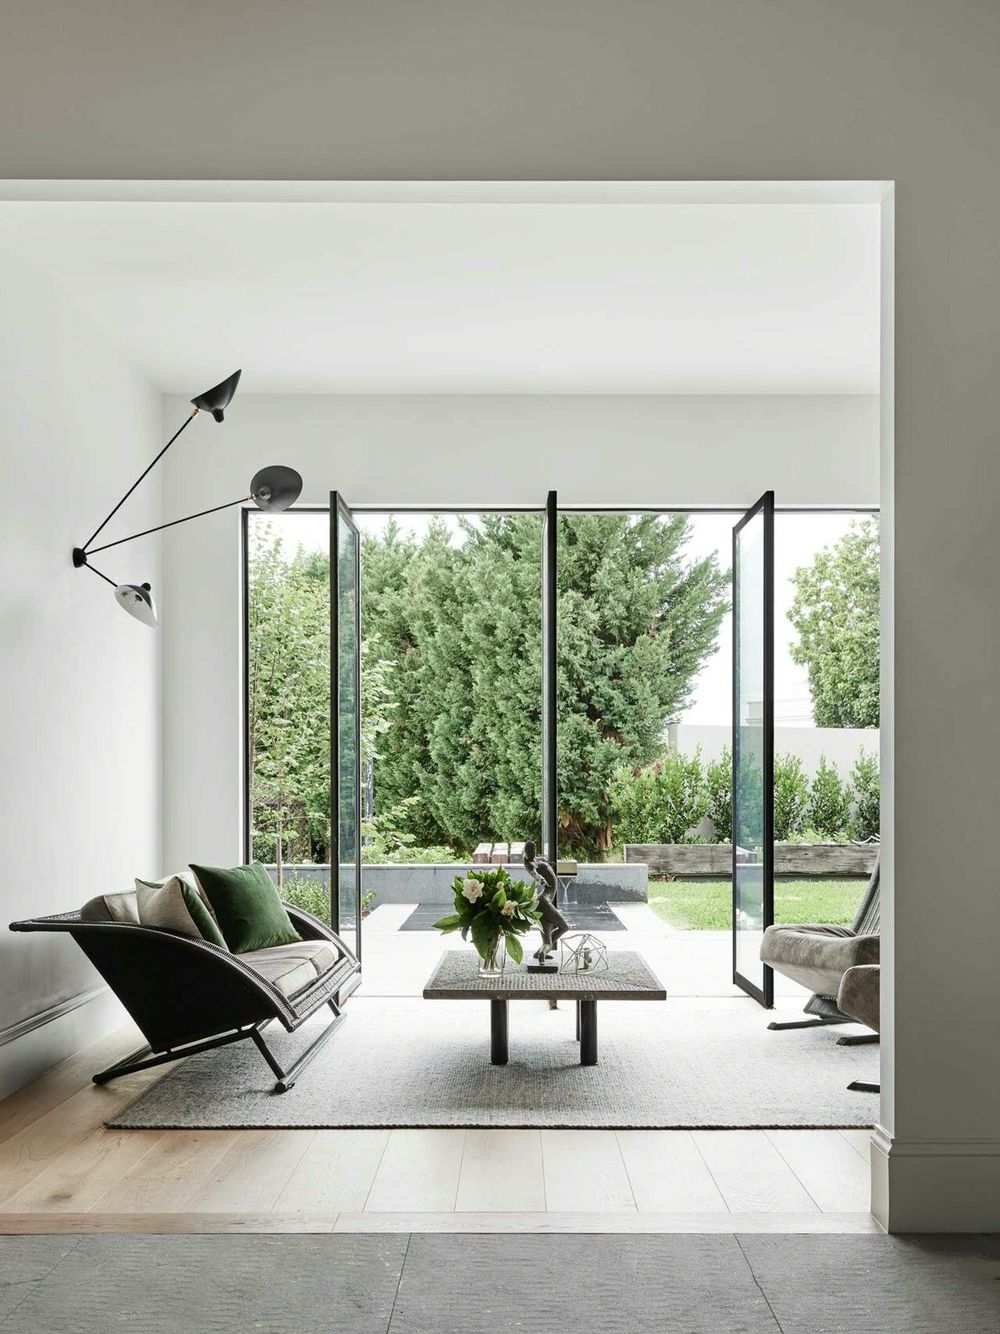 Glass Door Designs For Living Room Unique Pinoscar Racso On Interieur & Huisjes  Pinterest  Living Inspiration